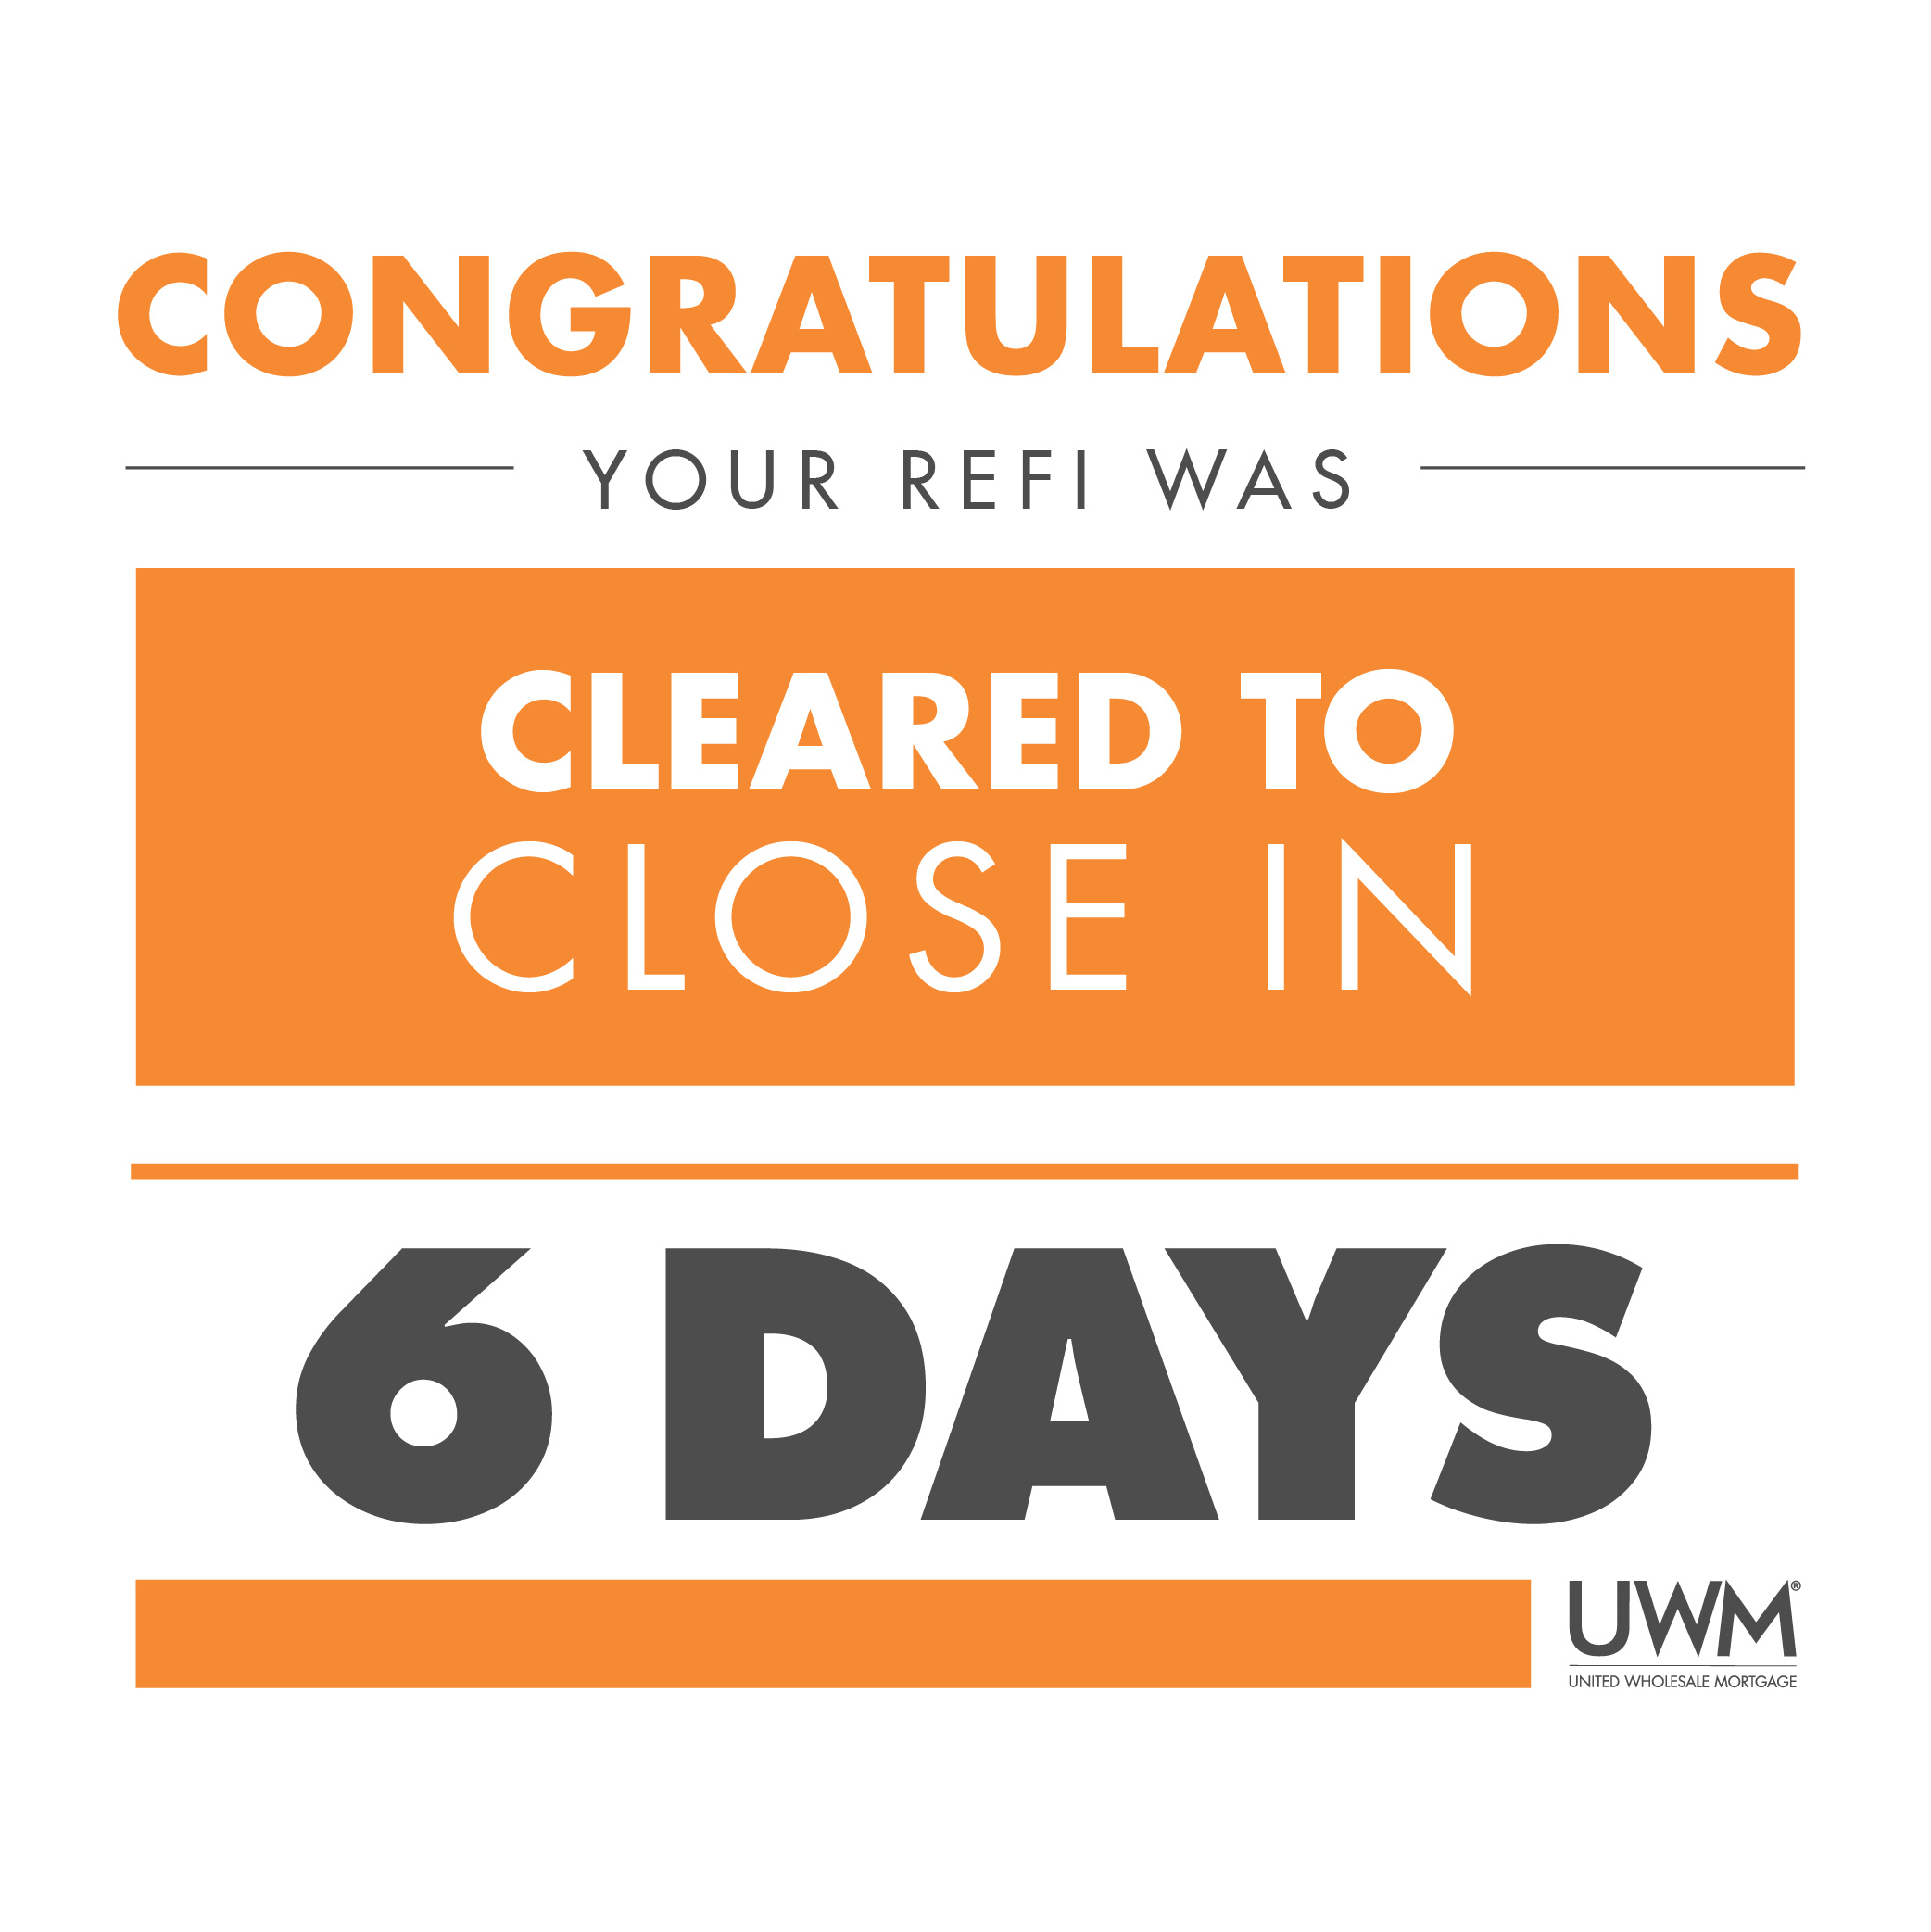 UWM Refinance in just 6 Days Clear-to-Close